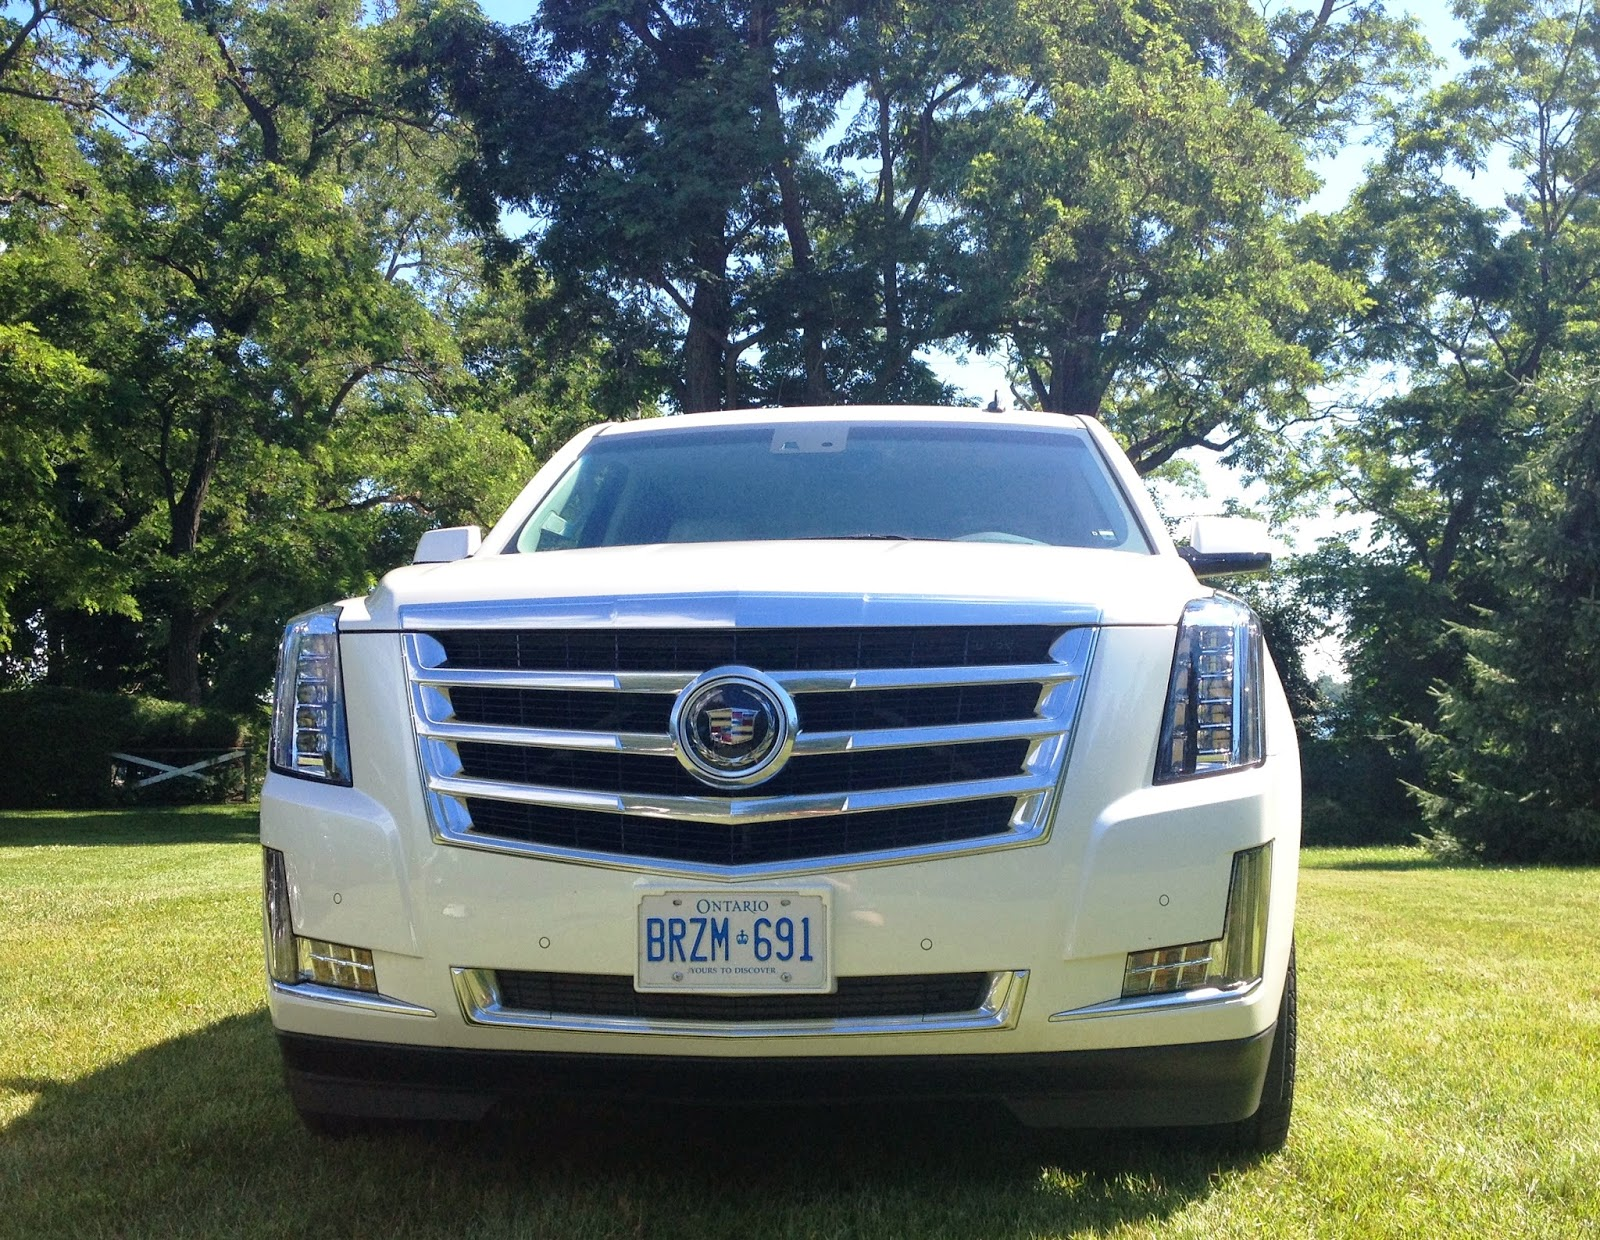 The highly detailed Galvano chrome grille of the 2015 Cadillac Escalade